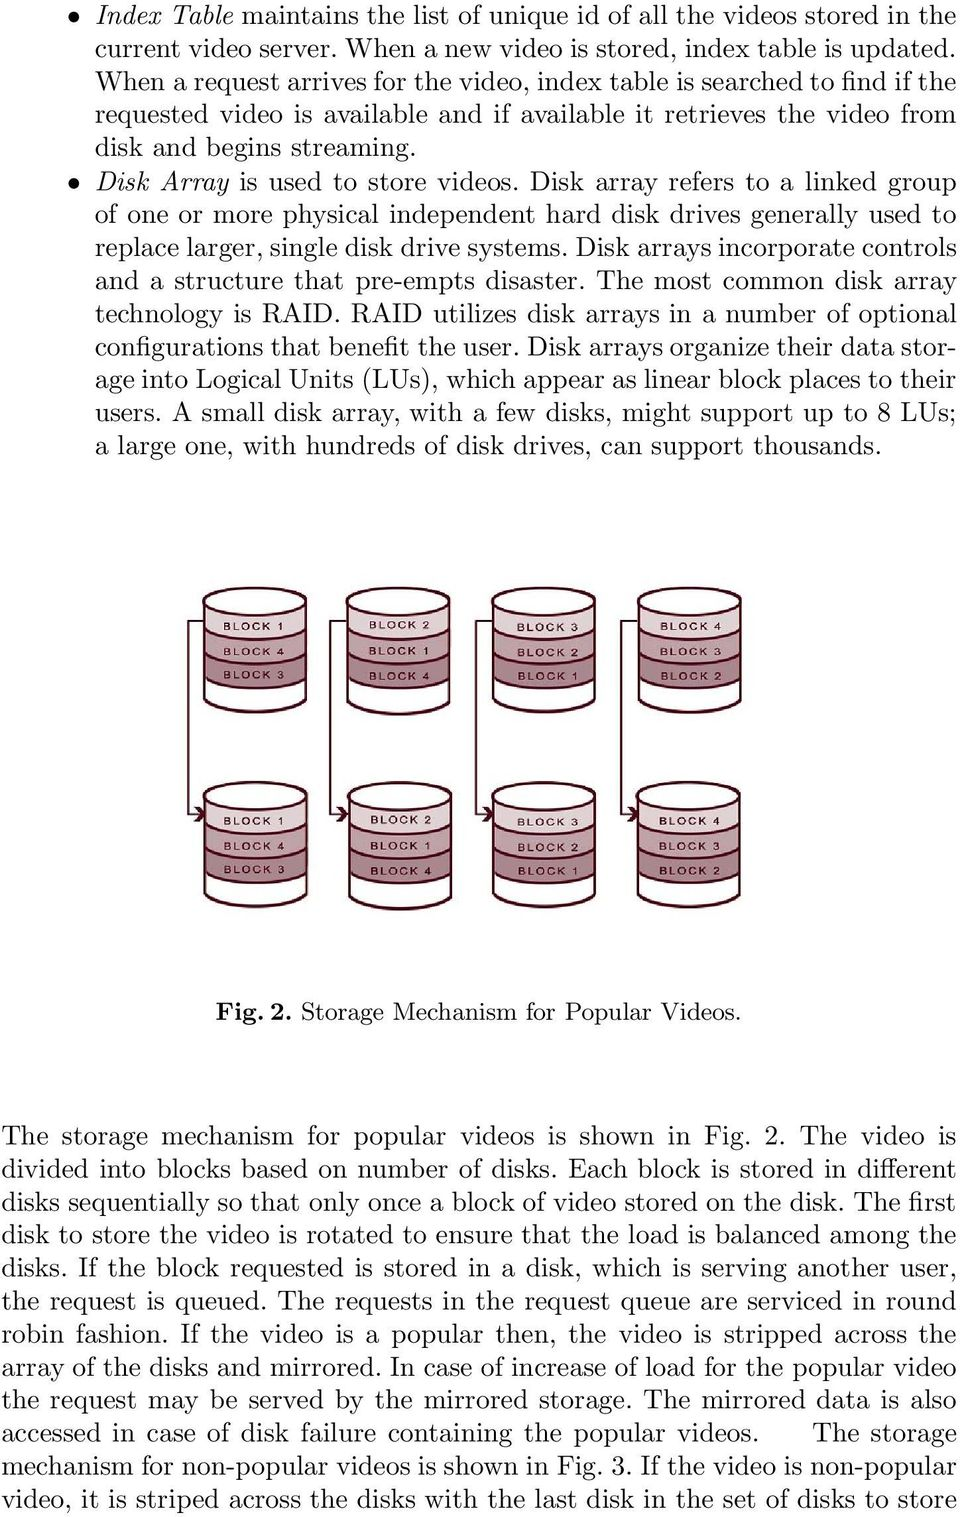 Disk Array is used to store videos. Disk array refers to a linked group of one or more physical independent hard disk drives generally used to replace larger, single disk drive systems.